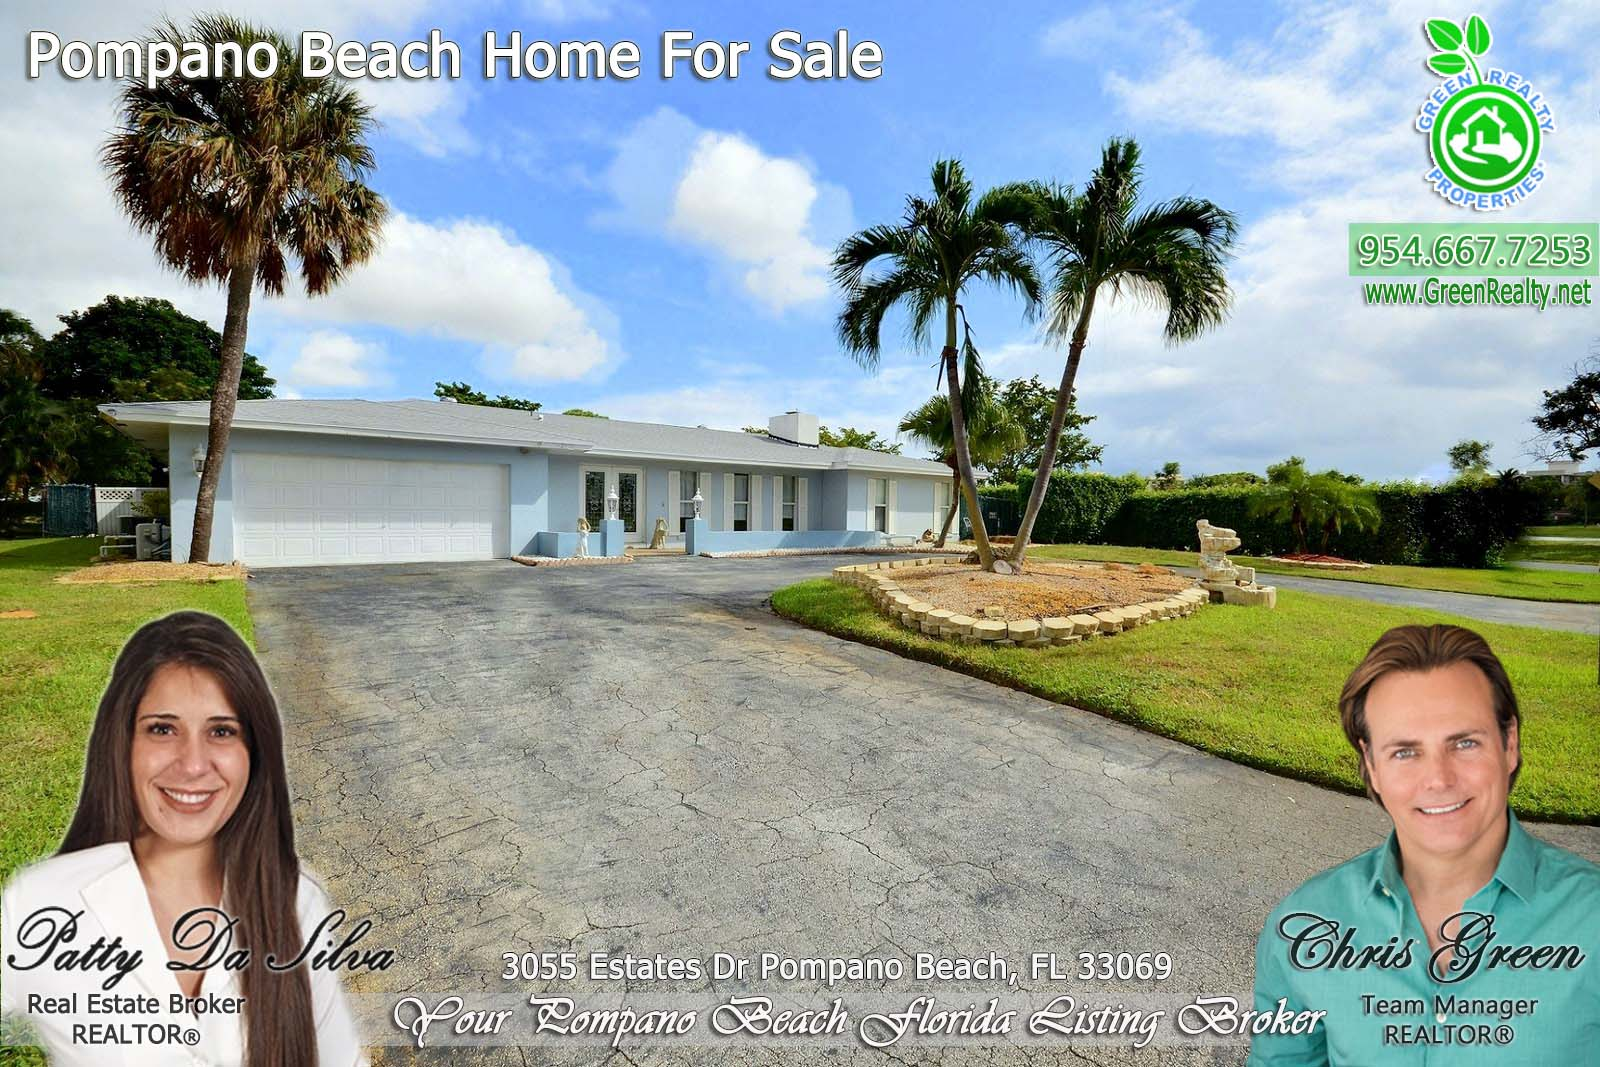 6 Homes For Sale in Pompano Beach (6)